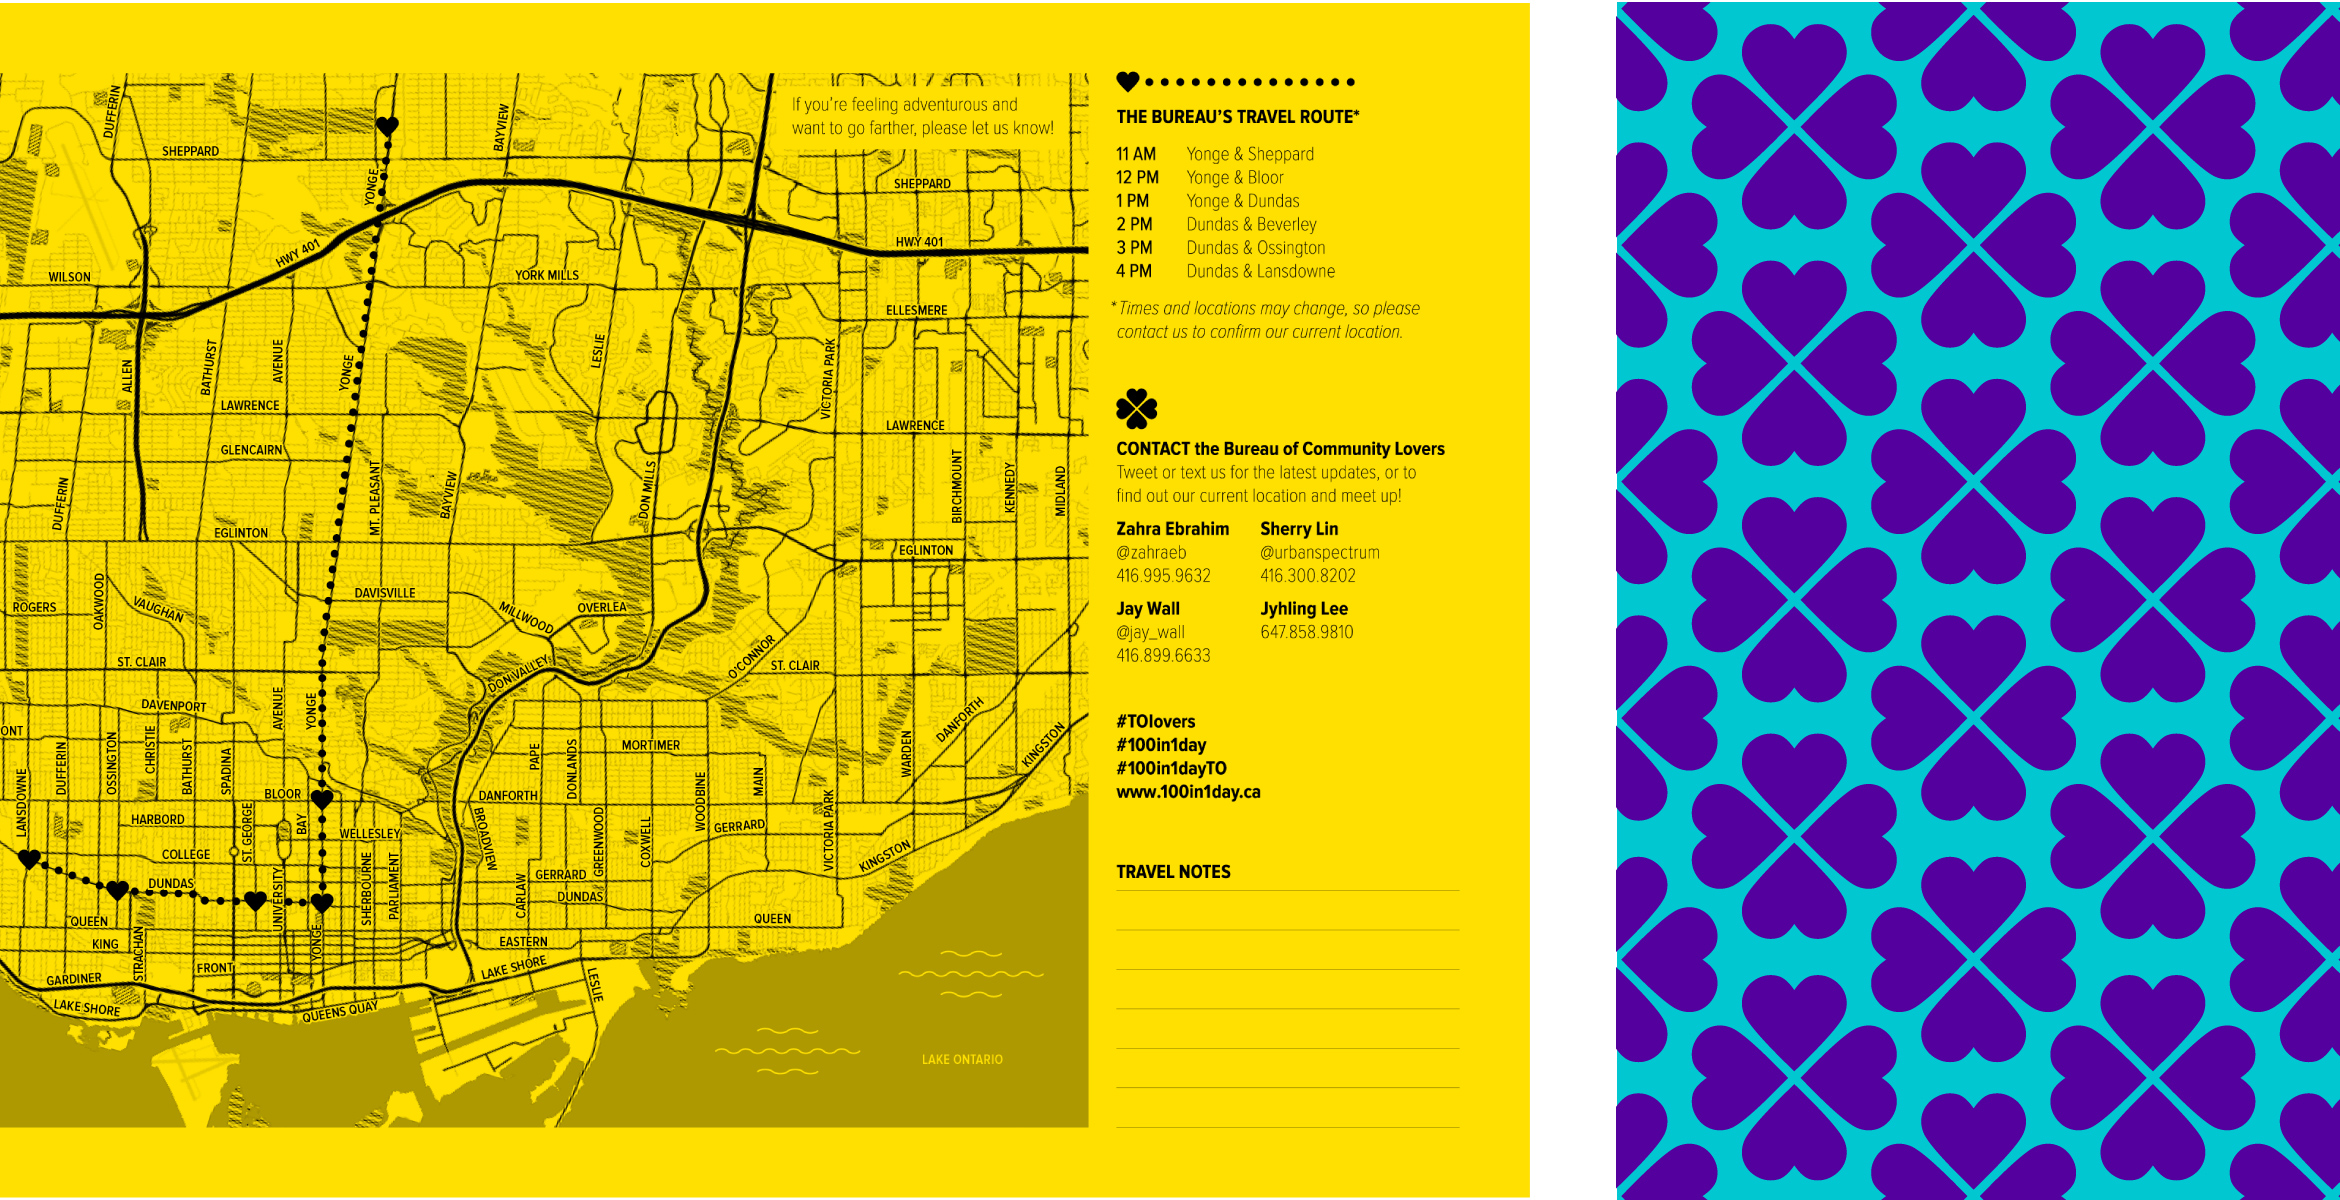 Bureau of Community Lovers map focused on travel routes within the City of Toronto. The order of the travel routes are Yonge and Sheppard, Yonge and Bloor, Yonge and Dundas, Dundas and Beverley, Dundas and Ossington, and Dundas and Landsdowne.